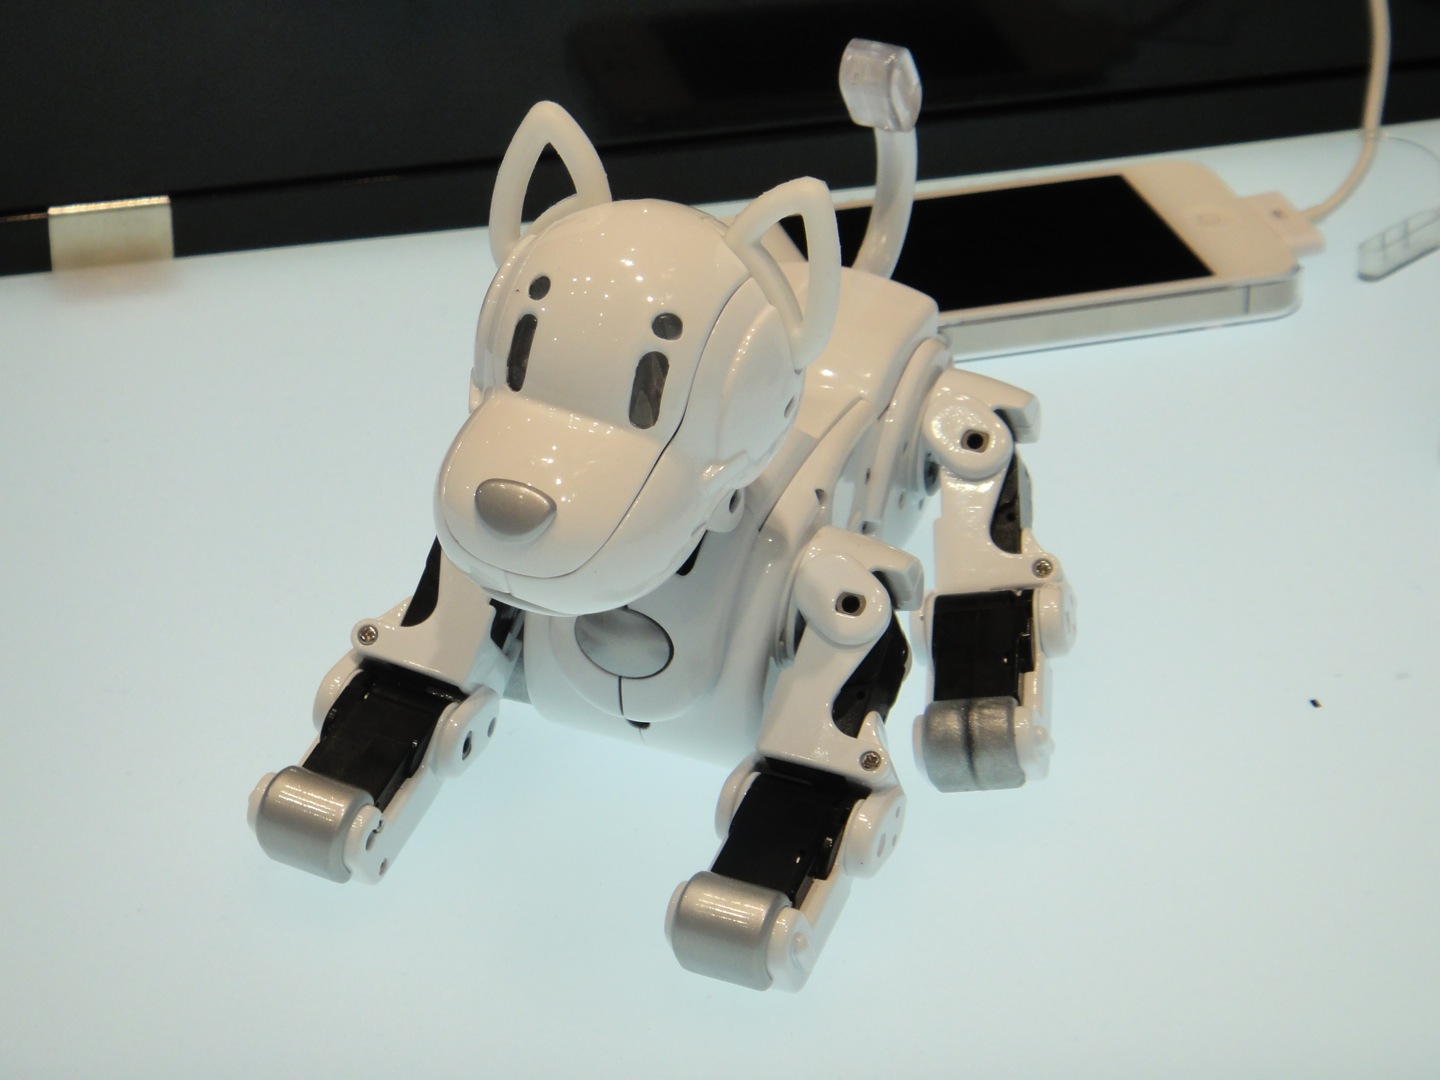 i-SODOG Robot Pet Dog Controlled Via Smartphone, Can Communicate With Its Friends